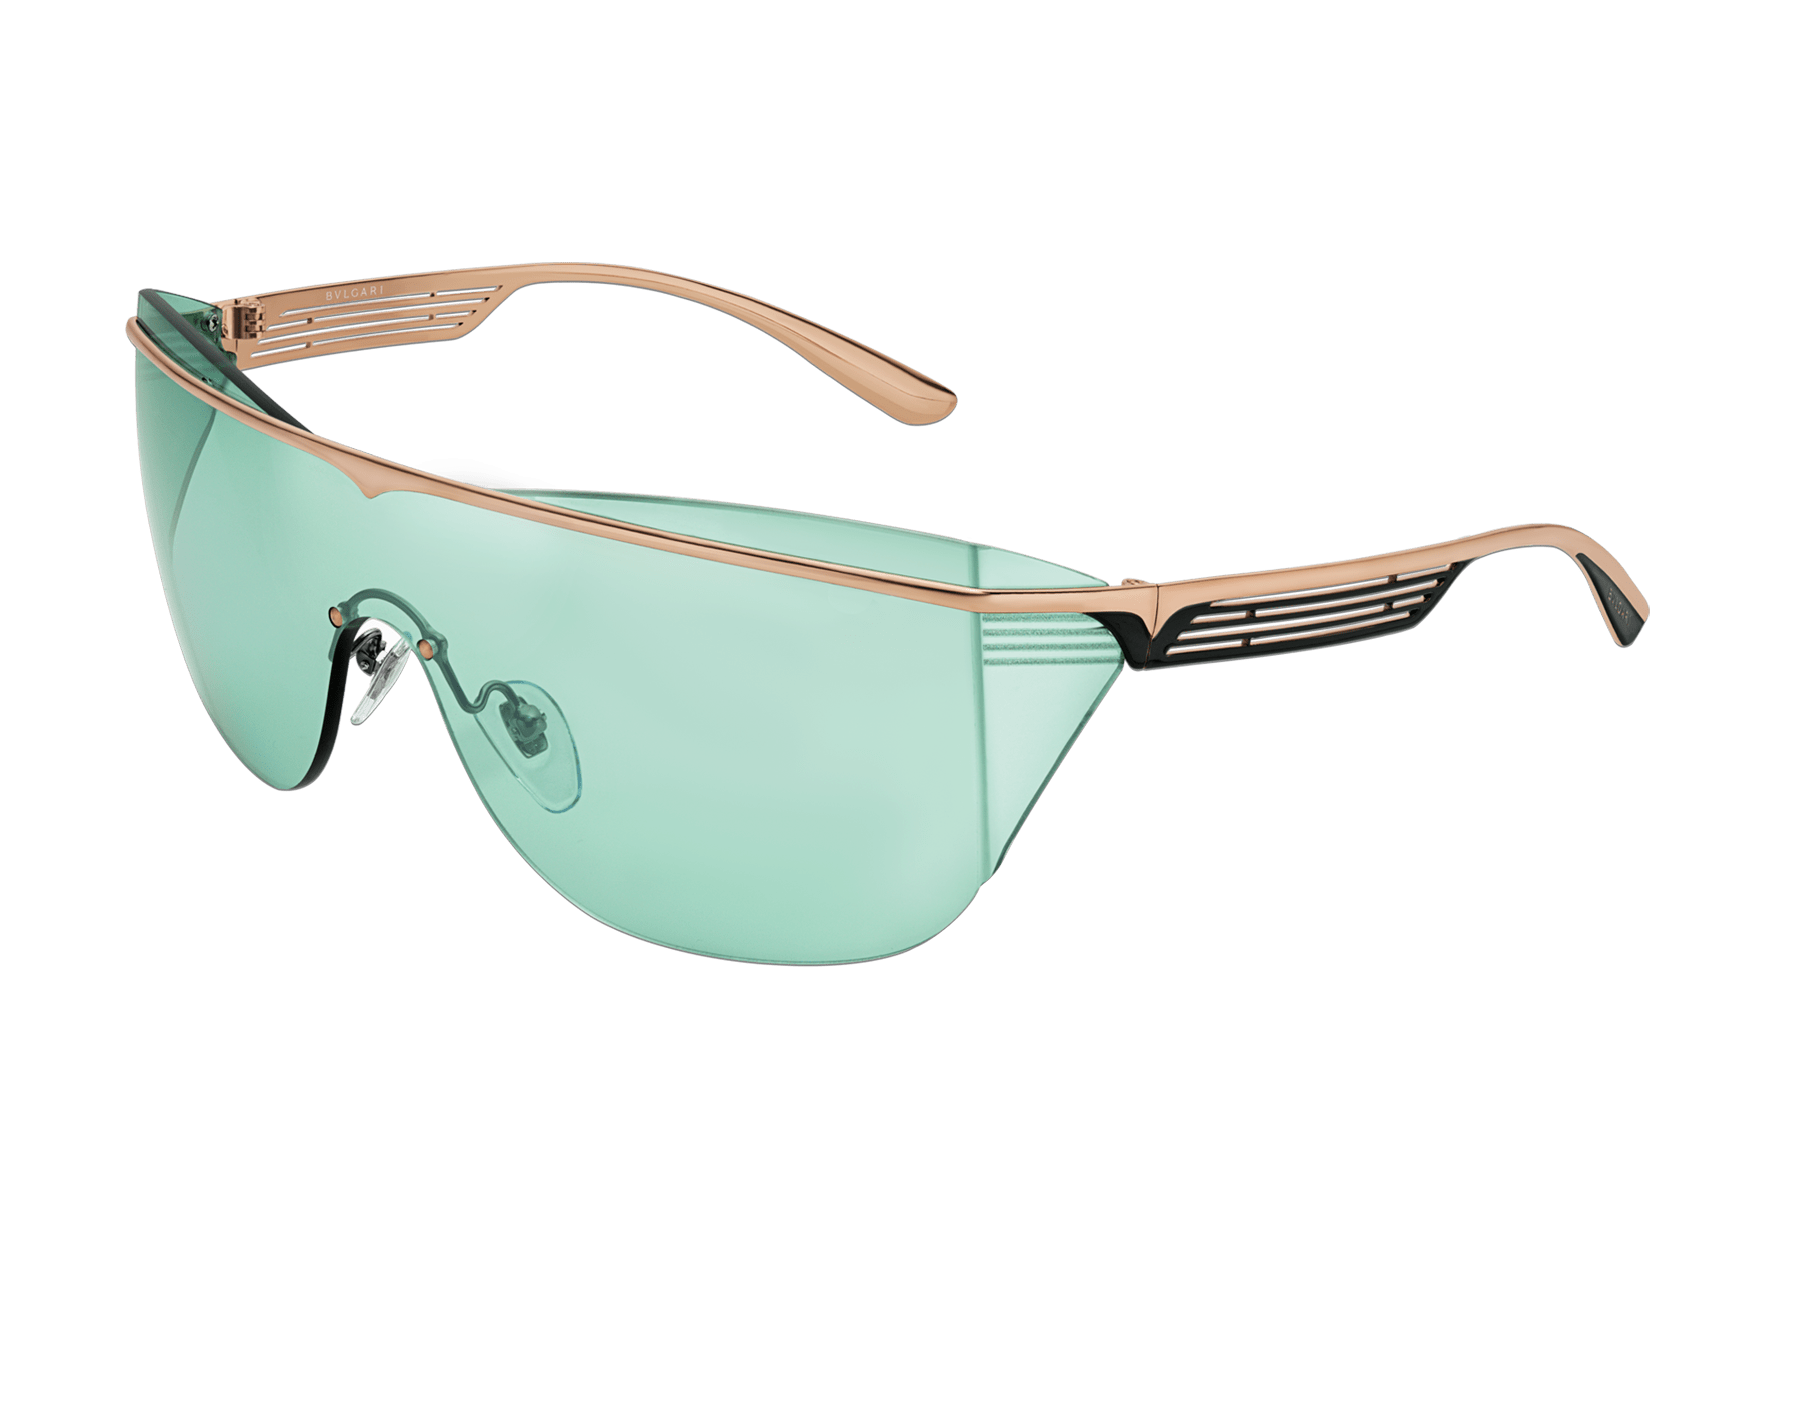 Bulgari B.zero1 B.supercurve metal shield sunglasses. 903967 image 1